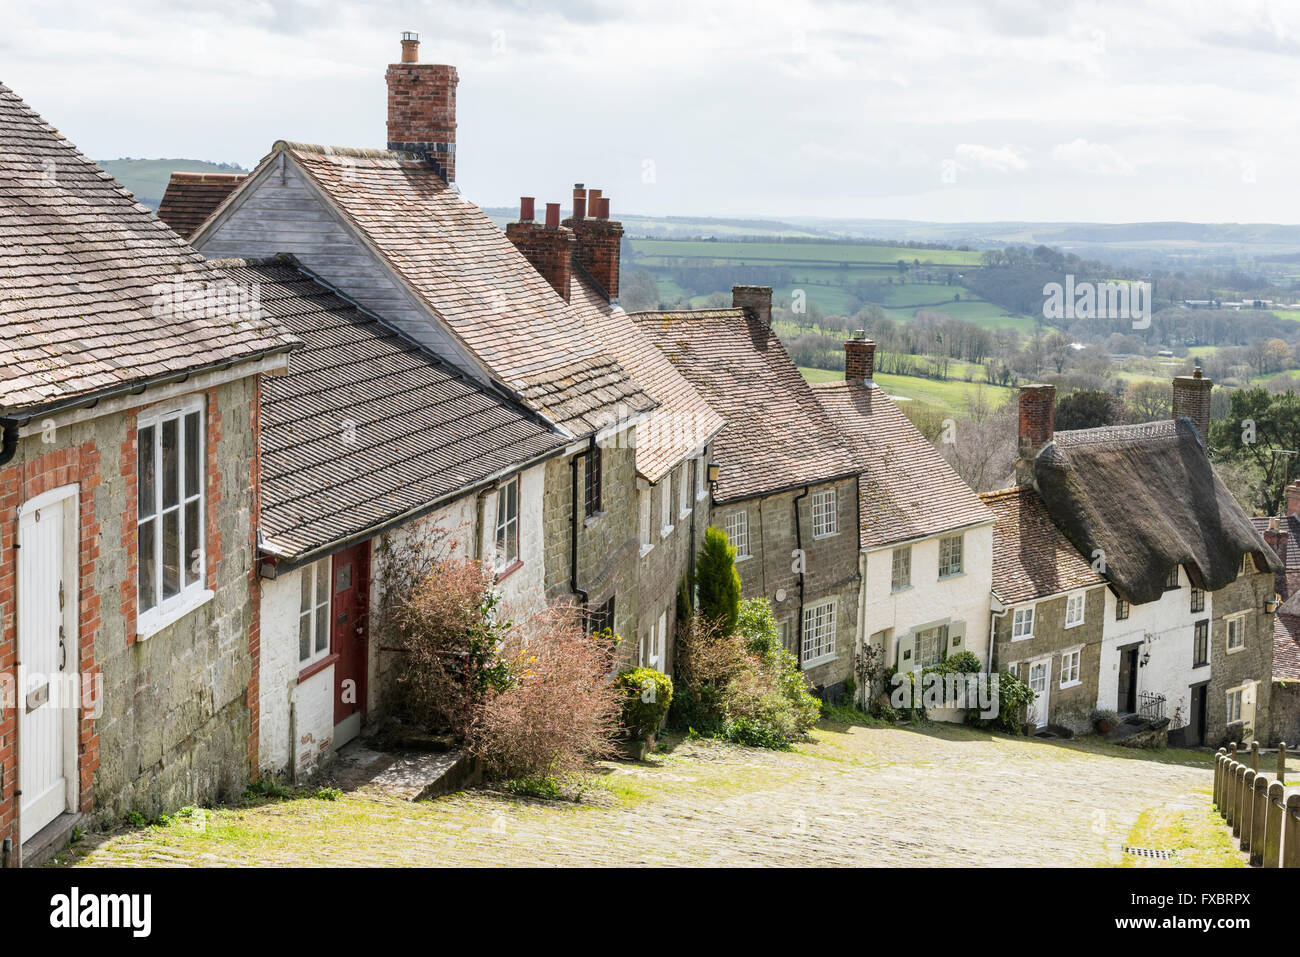 House on Gold Hill Shaftsbury Dorset UK, the Hovis Hill used for the 1970's Hovis Bread TV advert - Stock Image